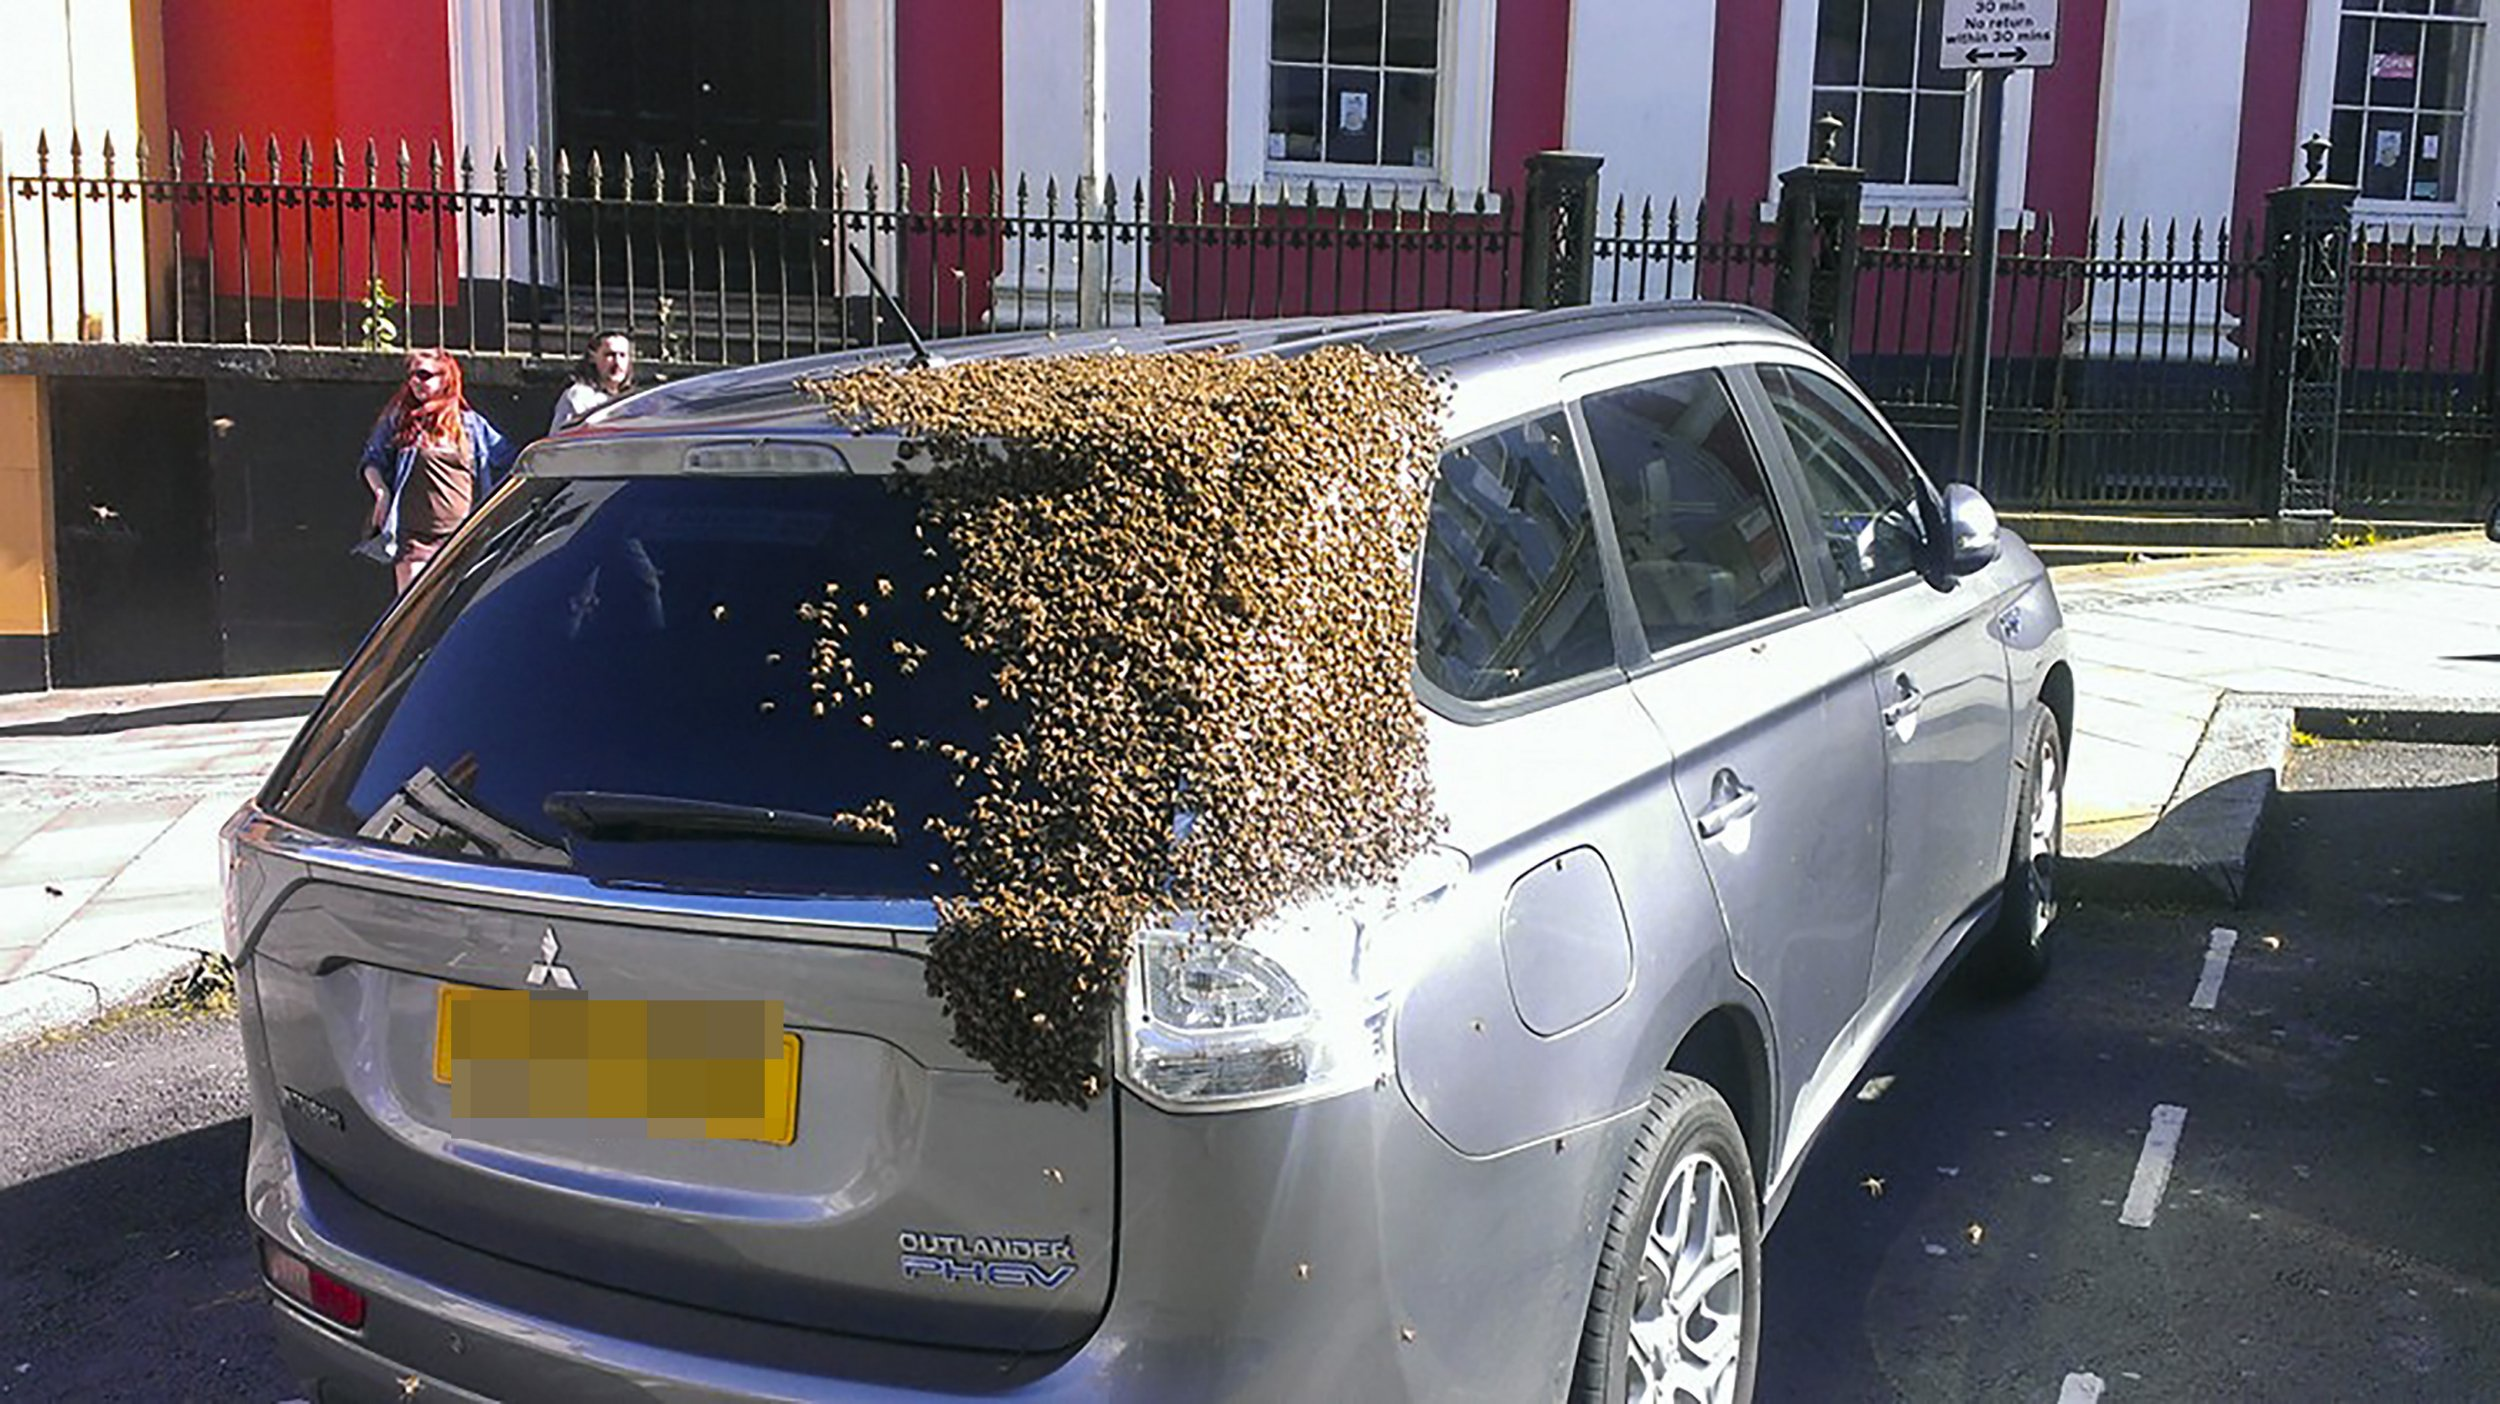 PIC BY TOM MOSES/MERCURY PRESS (PICTURED: THE BEES TAKEN UP RESIDENCE ON A 4X4 CAR PARKED IN A CAR PARK IN HAVERFORDWEST, SOUTH WEST WALES) A ëlostí swarm of bees sparked chaos in a high street when their queen got stuck in a car boot ñ resulting in 20,000 bees chasing the 4x4 for TWO DAYS. Dad-of-one Tom Moses, 41, spotted the unusual sight while driving through Haverfordwest, south west Wales, around 5pm on Sunday evening and decided to stop to help out. However it took a procession of FIVE different beekeepers, park rangers and passers-by to coax them off into a cardboard box, only for the wind to blow it off the car and the queen go back to the boot. Roger Burns of Pembrokeshire Beekeepers then says the carís owner returned and drove away with the queen unknowingly trapped in the back, resulting in the swarm taking up the chase the next day. SEE MERCURY COPY